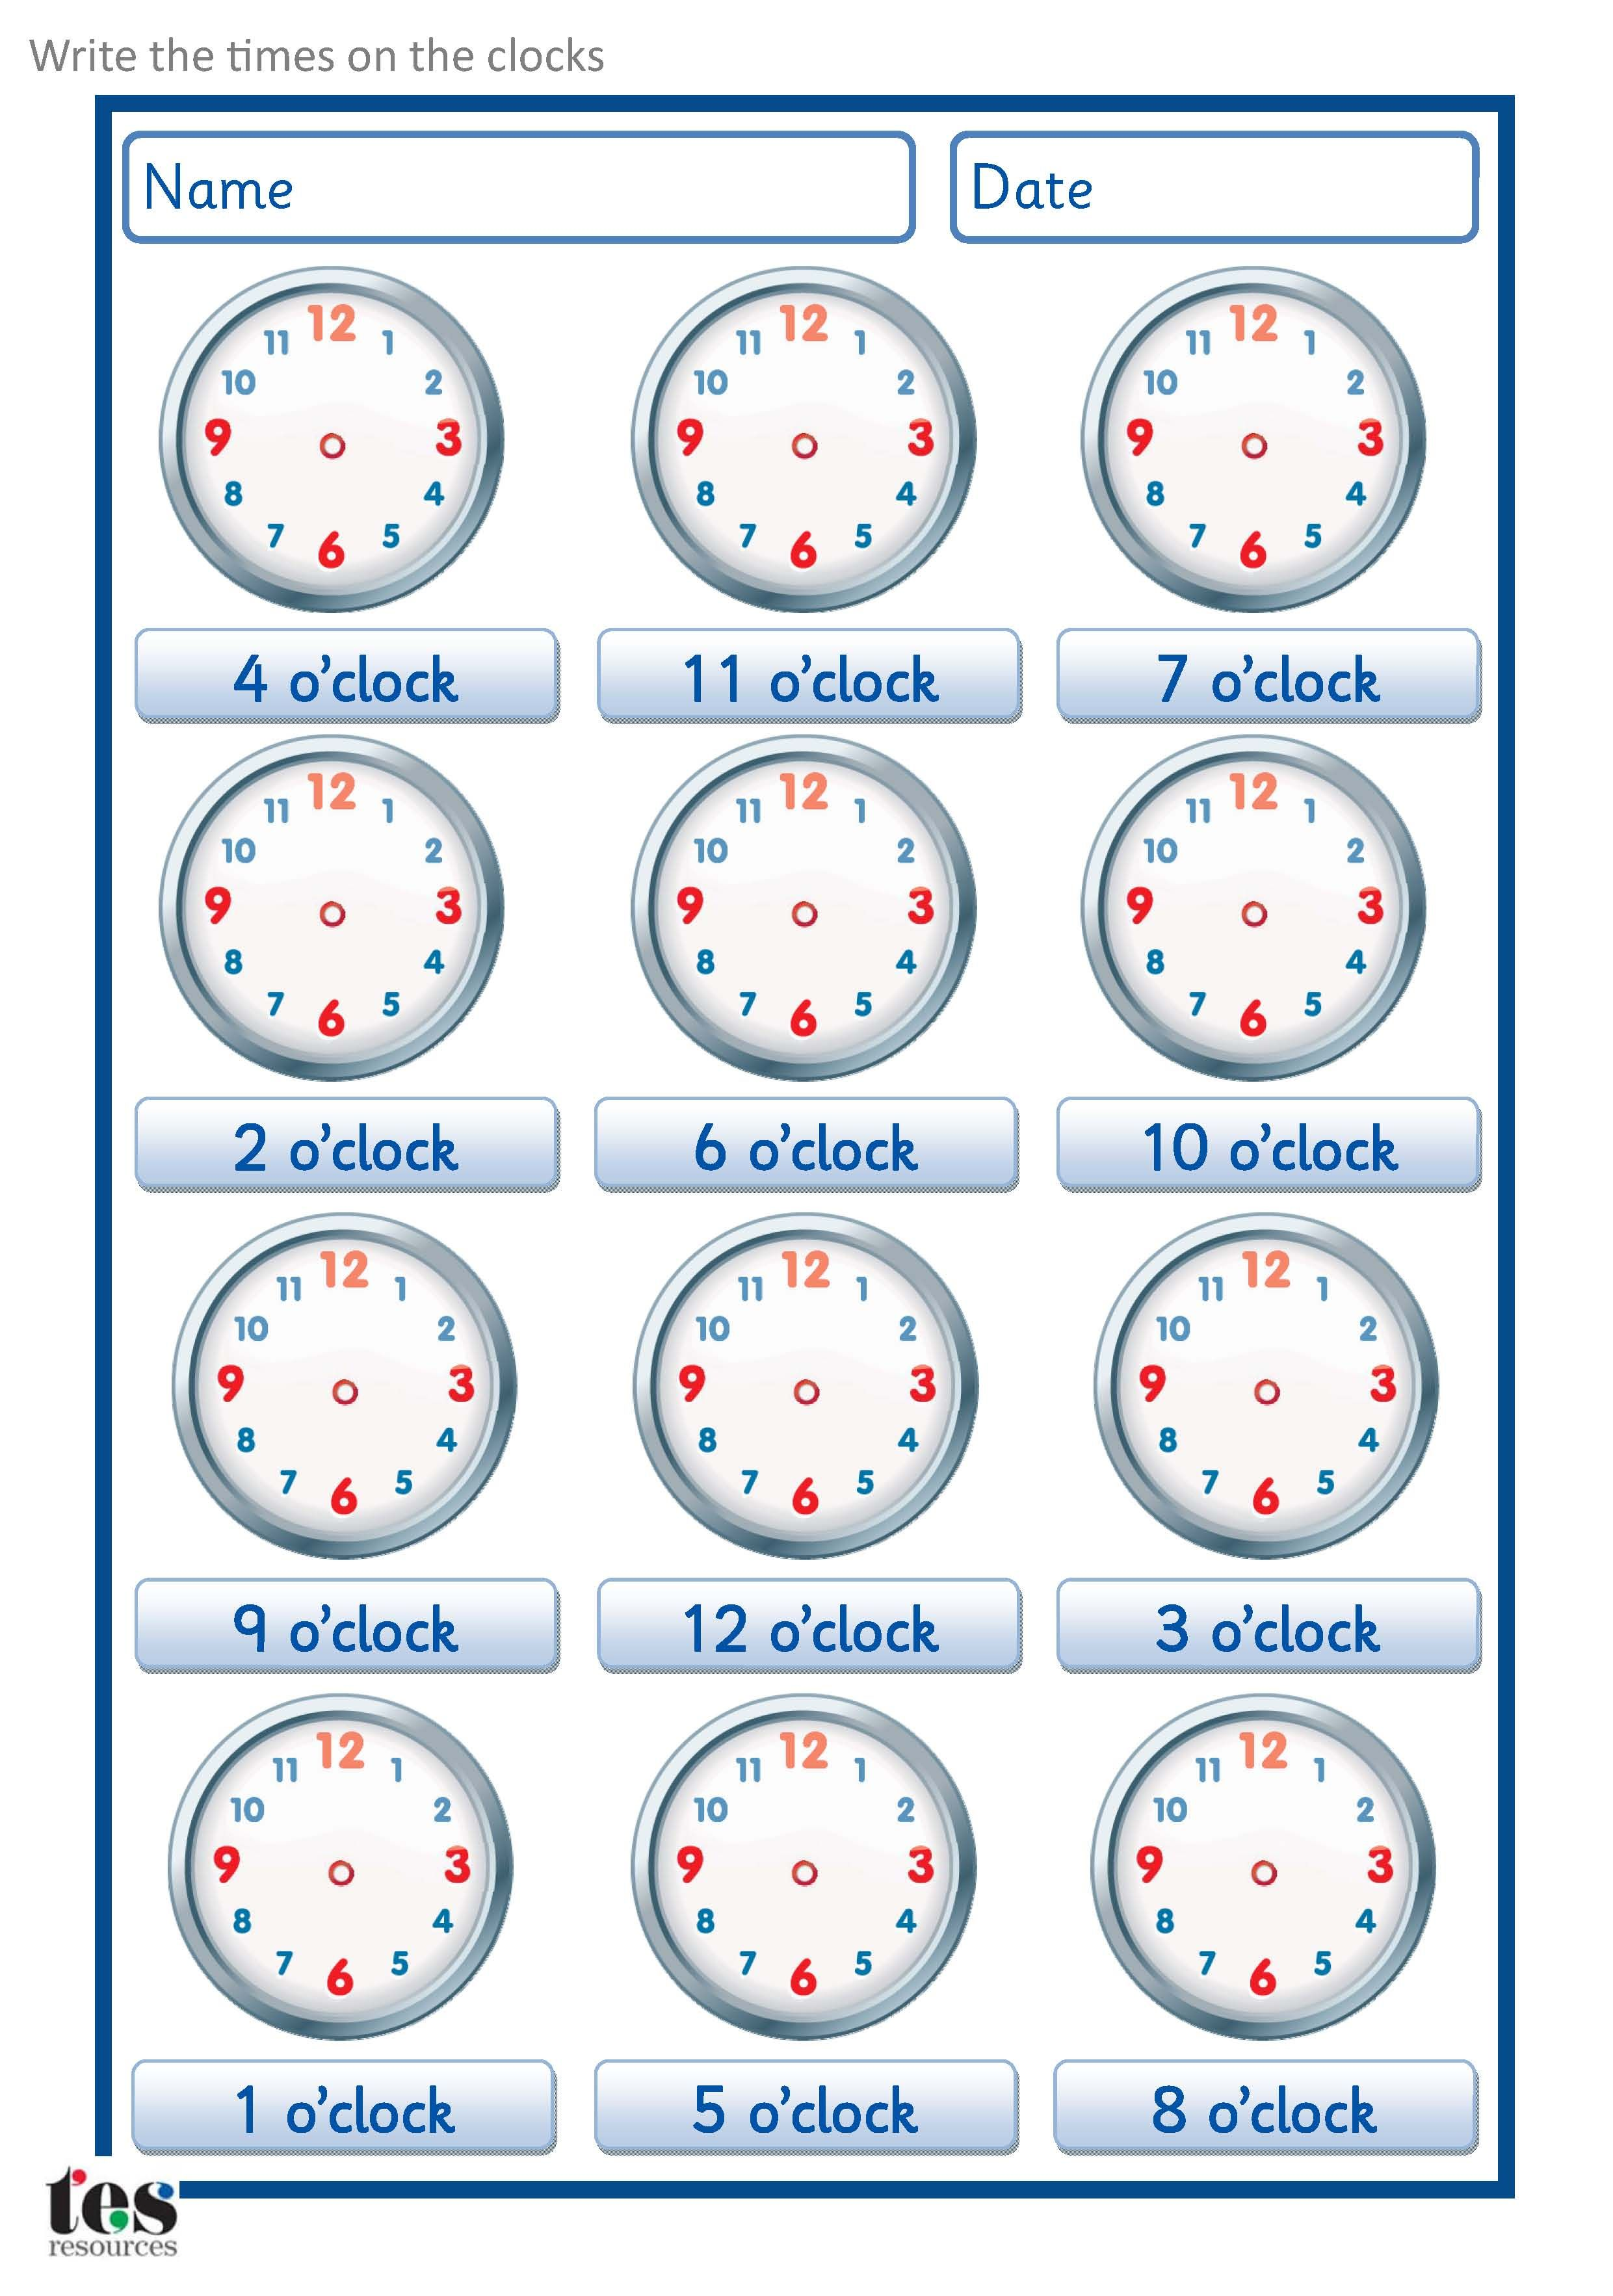 A Set Of Worksheets To Use When Developingogue Clock Skills Set Contains 4 Sheets Each